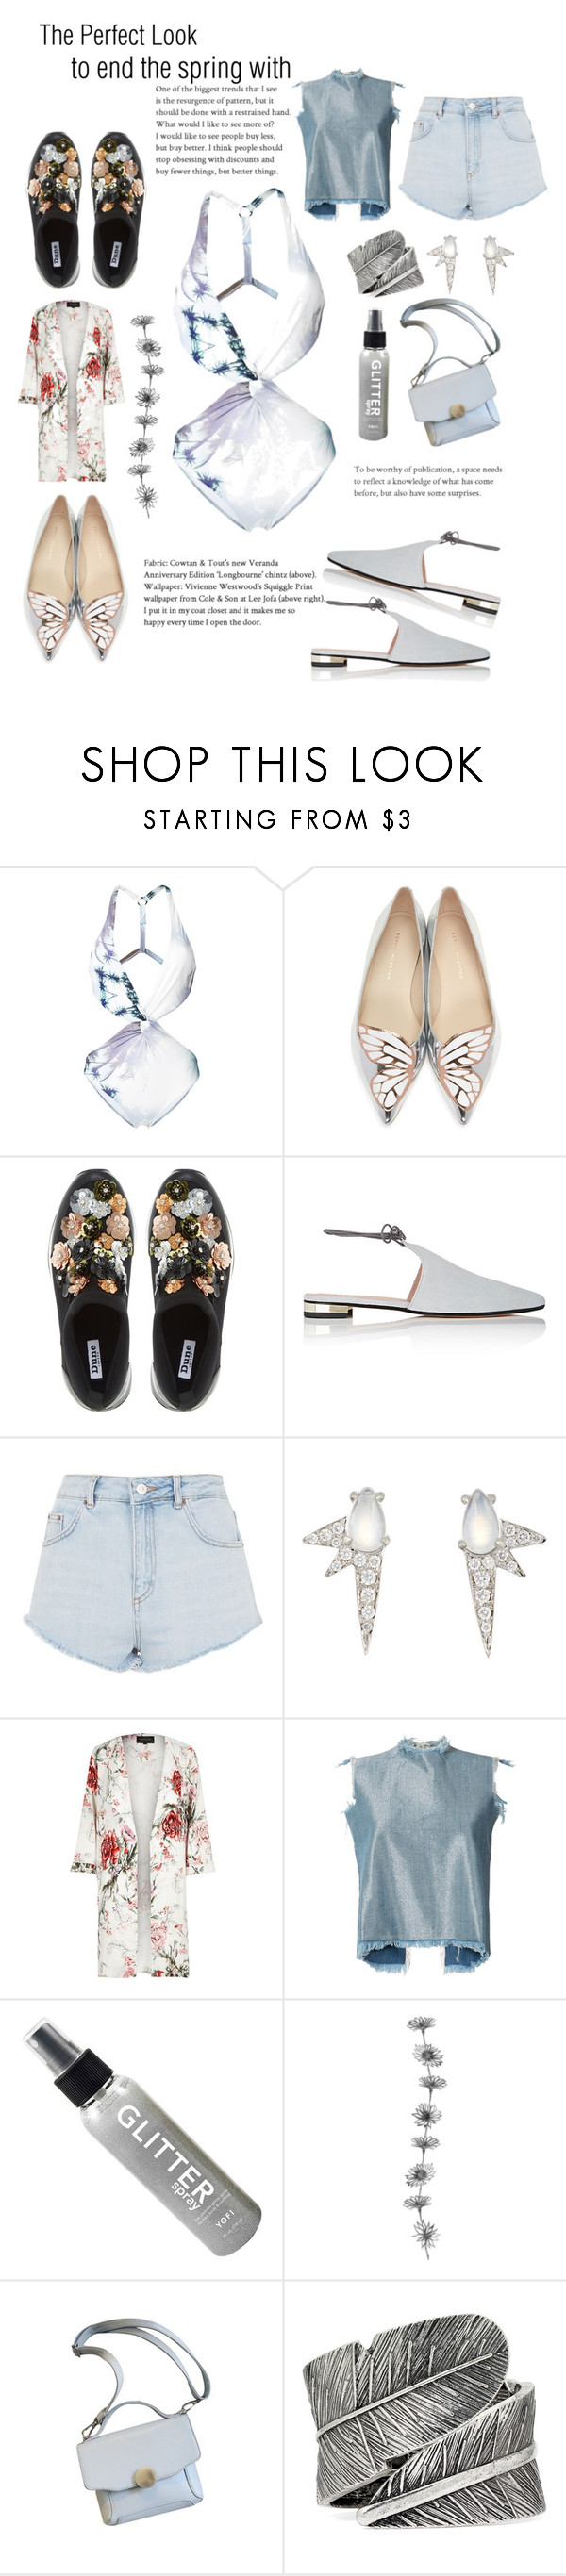 """""""last days of spring"""" by veredrosestyle ❤ liked on Polyvore featuring Fleur of England, Sophia Webster, Dune, Barneys New York, Topshop, Finn, River Island, Marques'Almeida and Decree"""